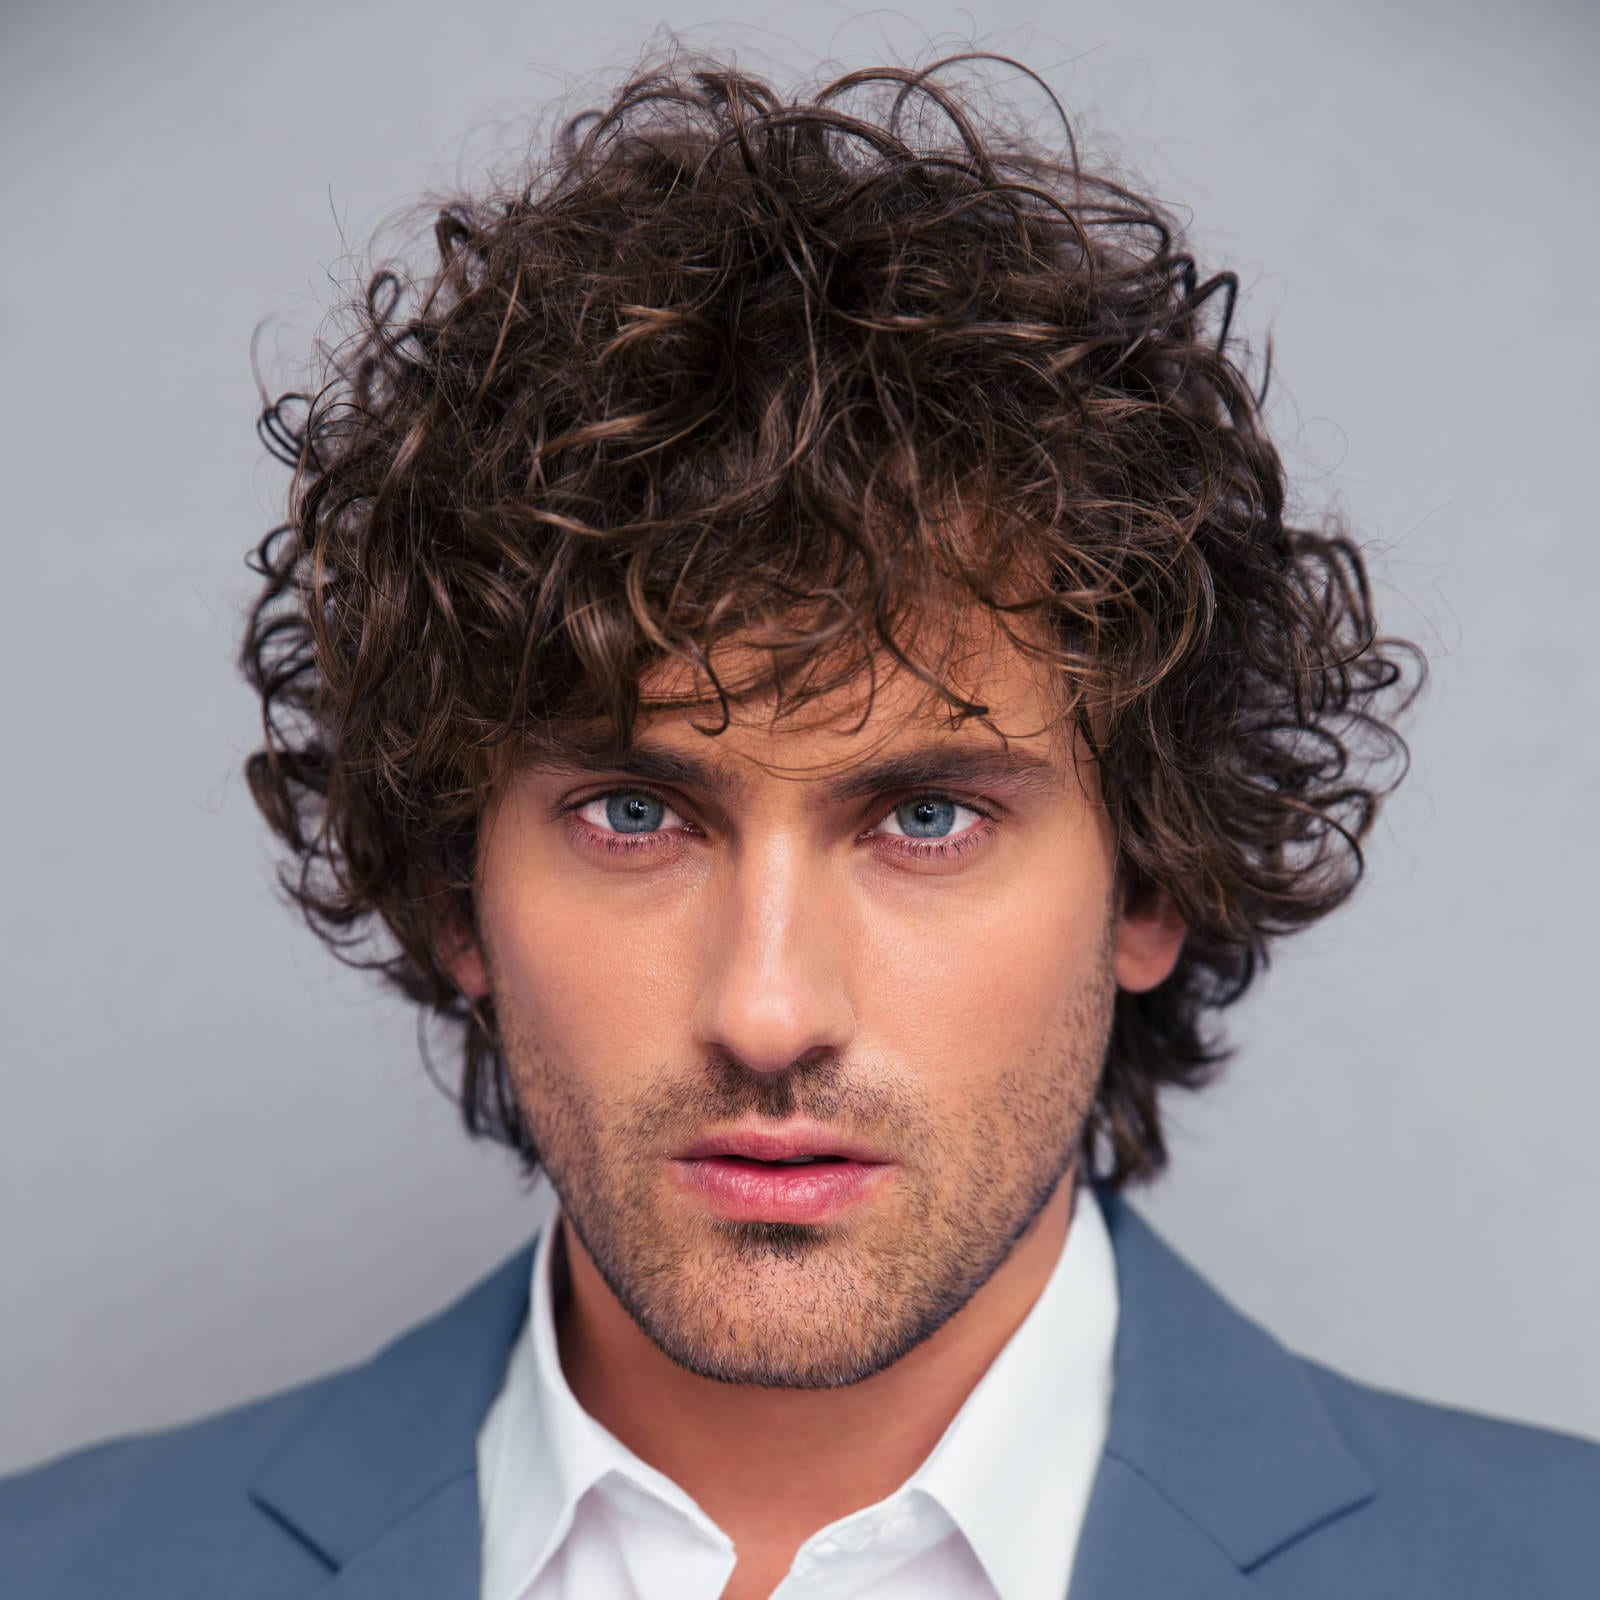 40 Modern Men's Hairstyles For Curly Hair (That Will Change Your Look) Intended For Widely Used Medium Hairstyles For Thin Curly Hair (Gallery 17 of 20)